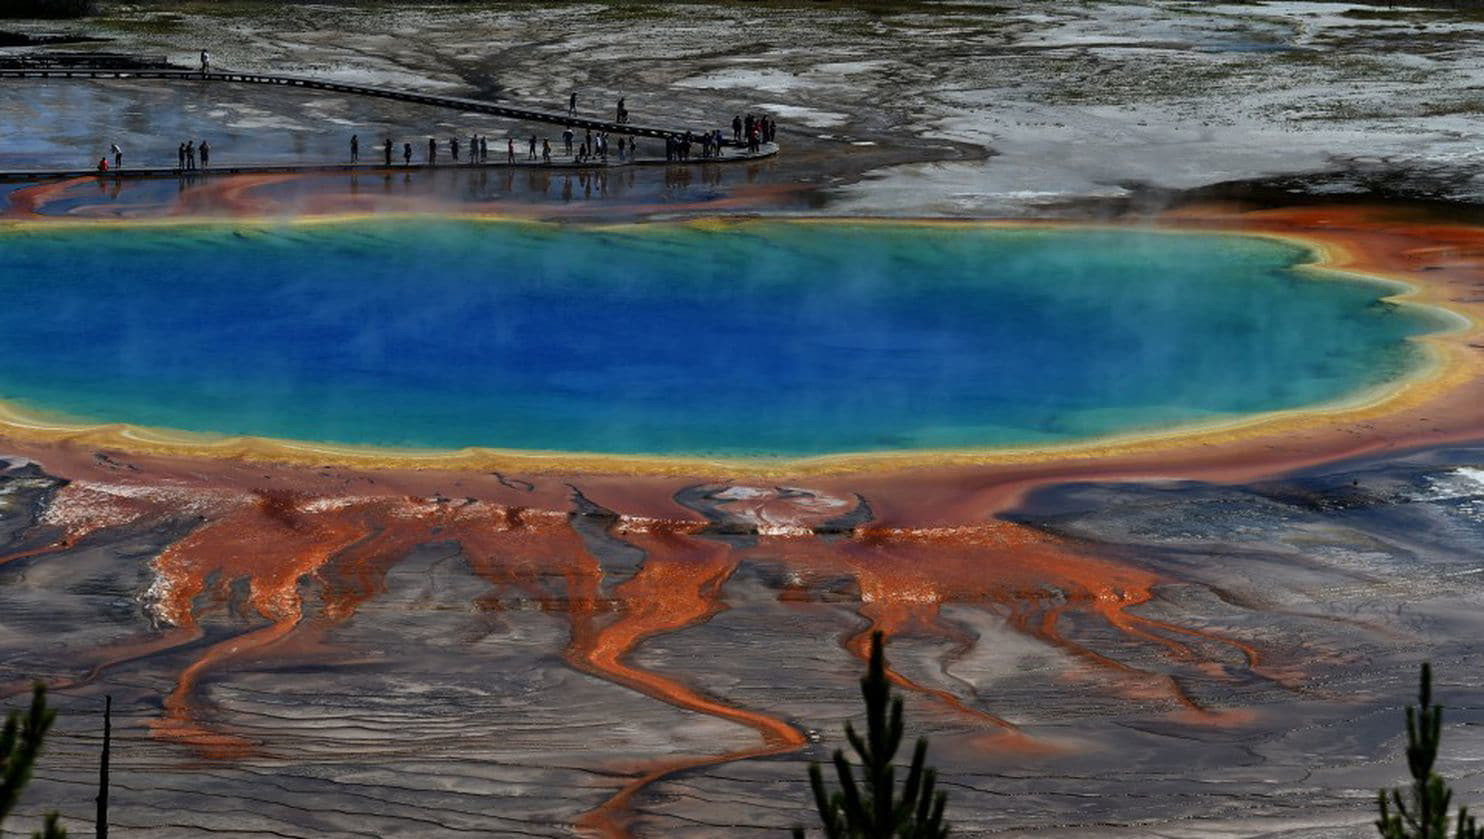 The Yellowstone supervolcano is a disaster waiting to happen